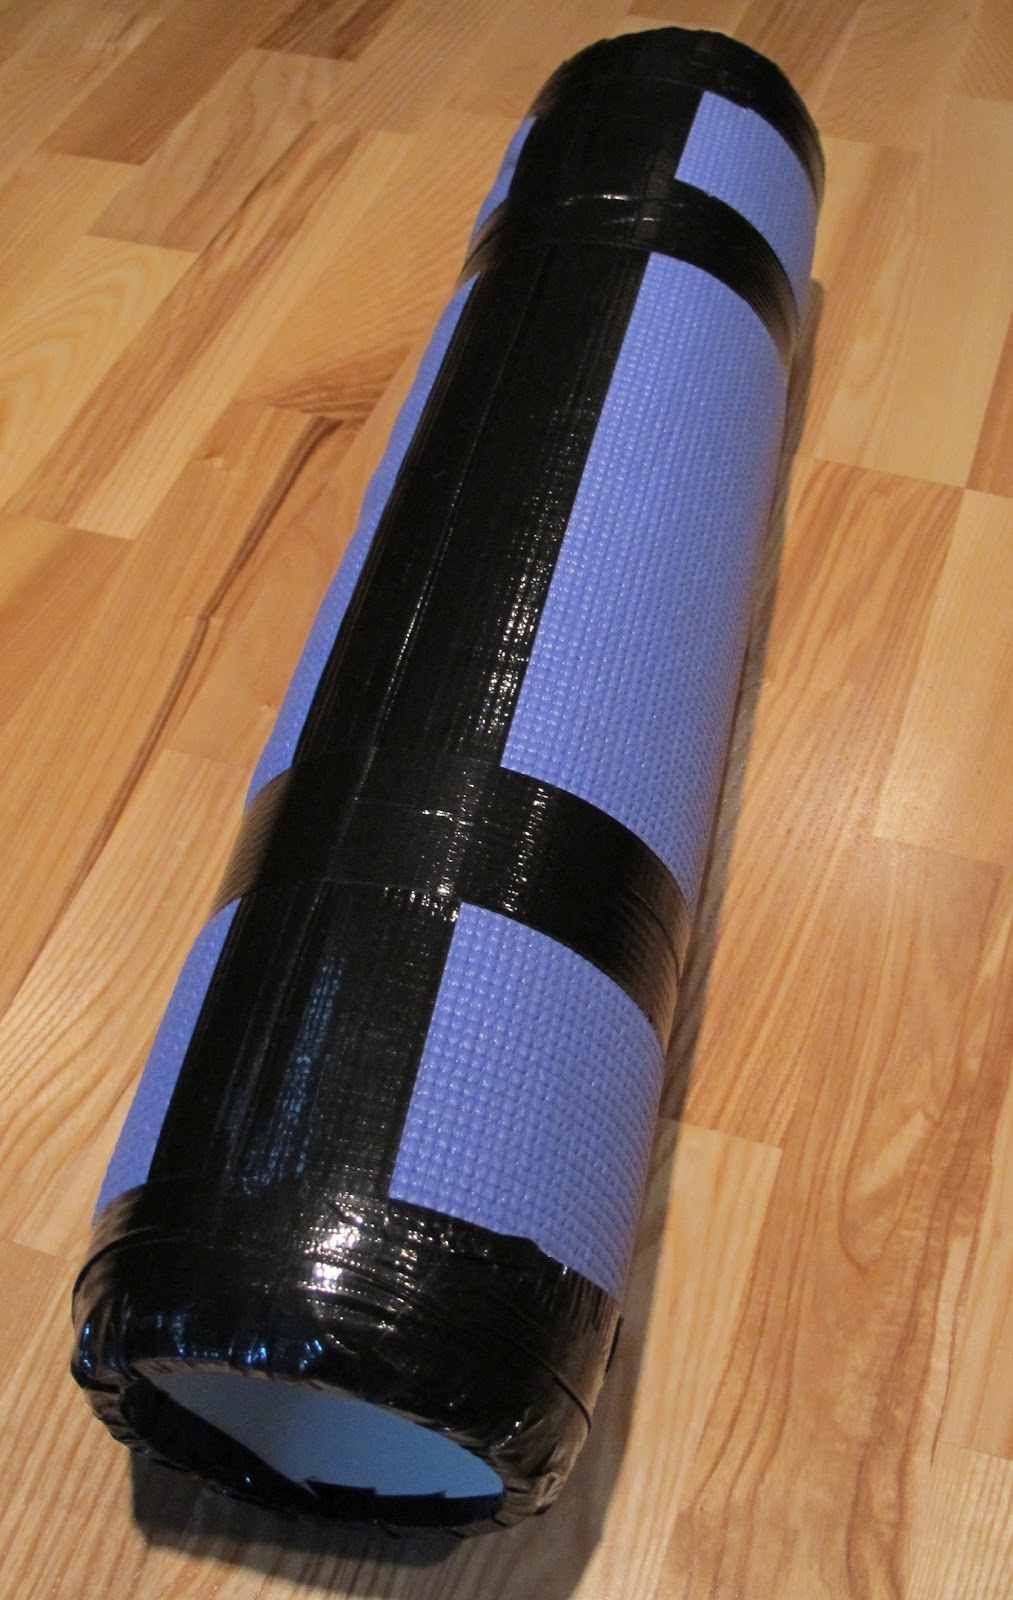 How To Make A Foam Roller For Under 15 In Less Than 15 Minutes